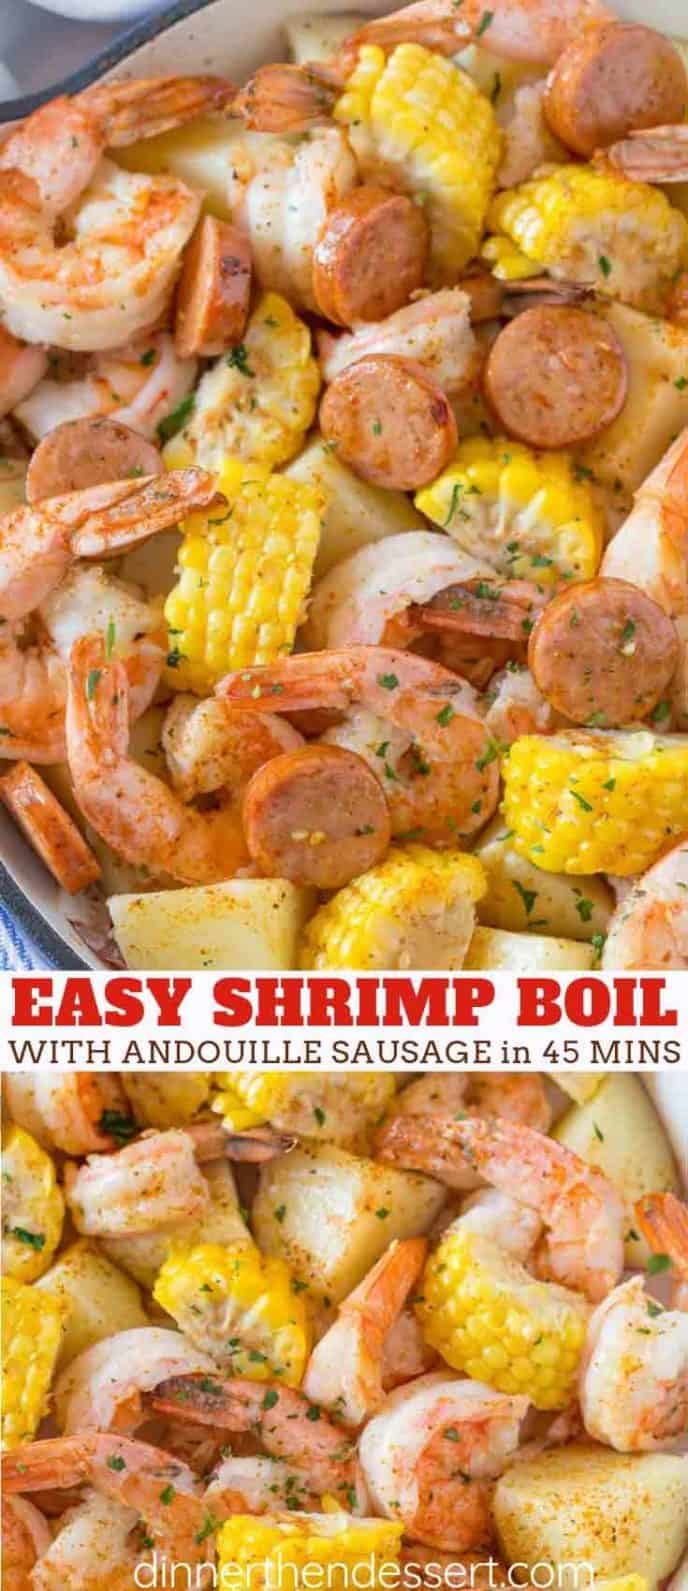 Shrimp and Sausage Boil with Corn and Potatoes